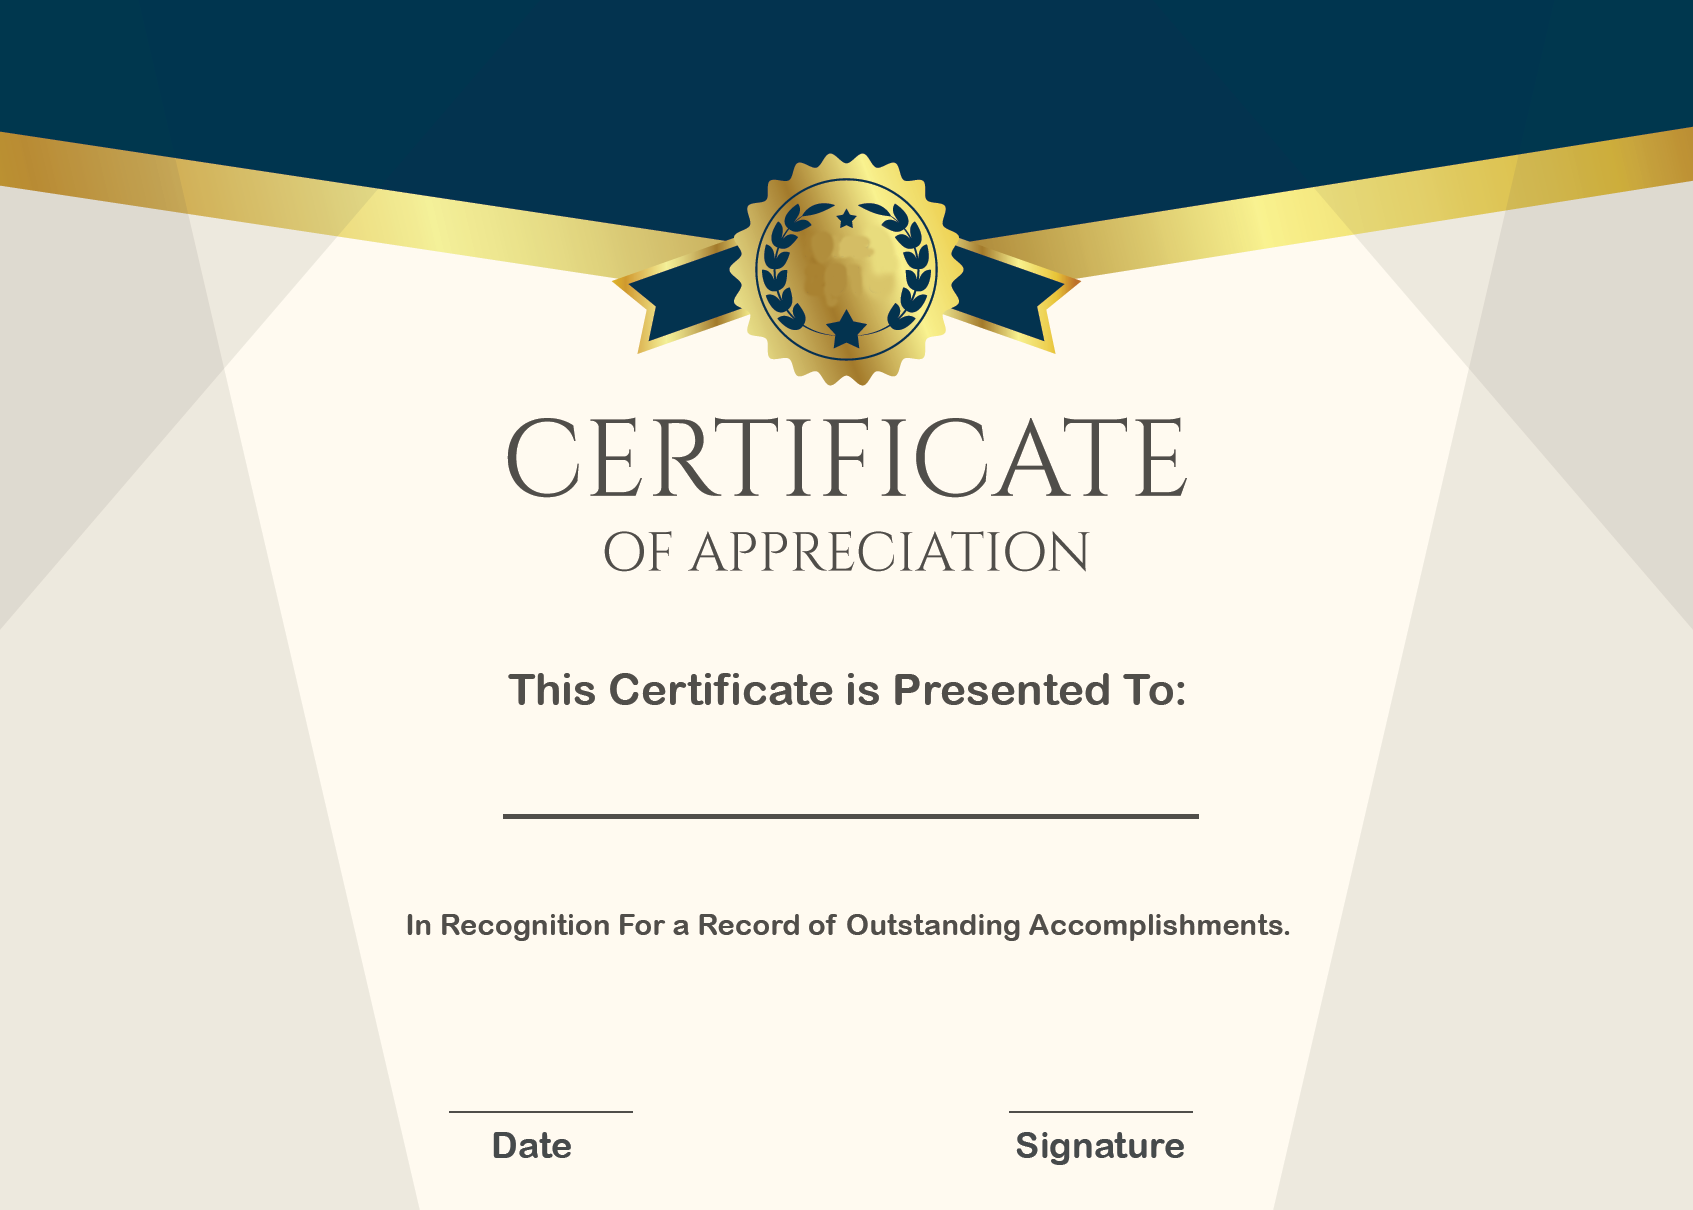 Certificate of Appreciation Wording Example